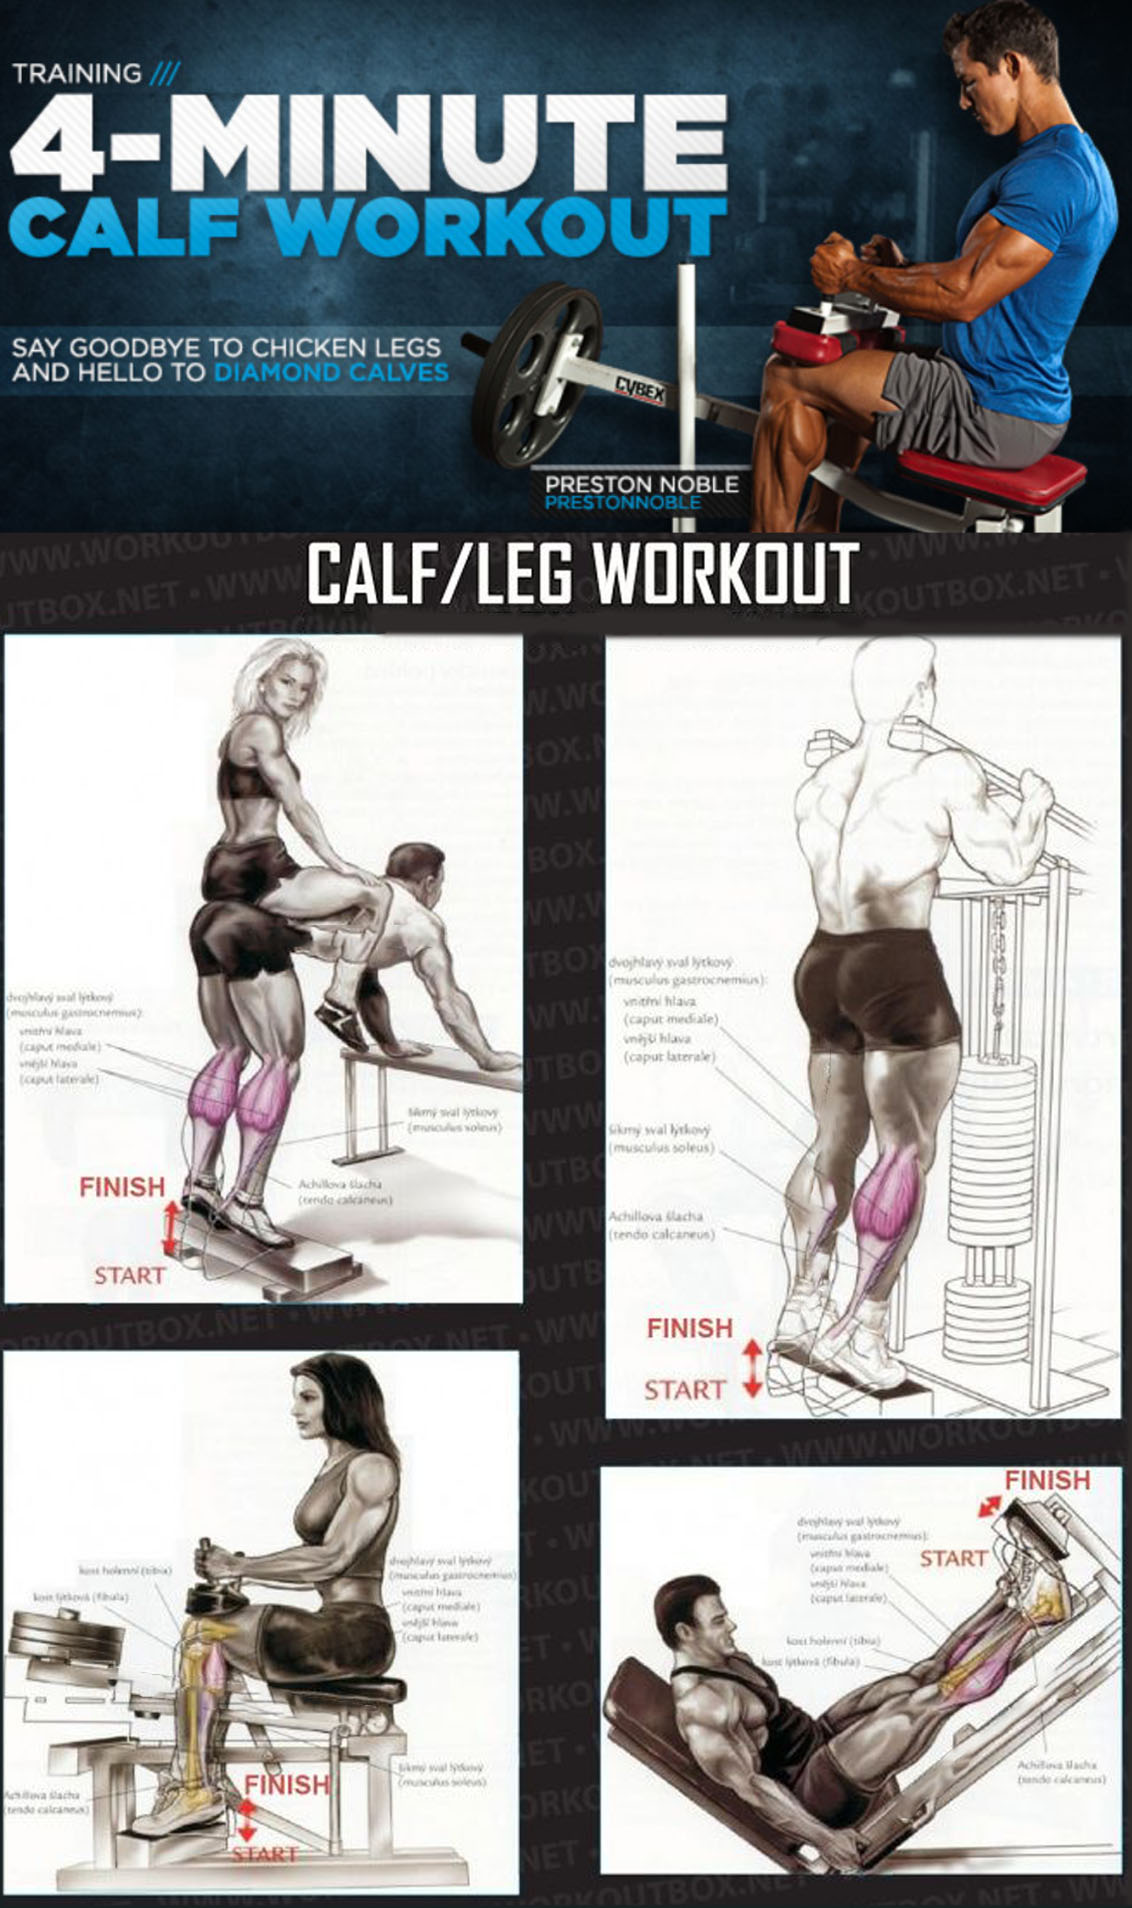 4 MINUTE CALF WORKOUT